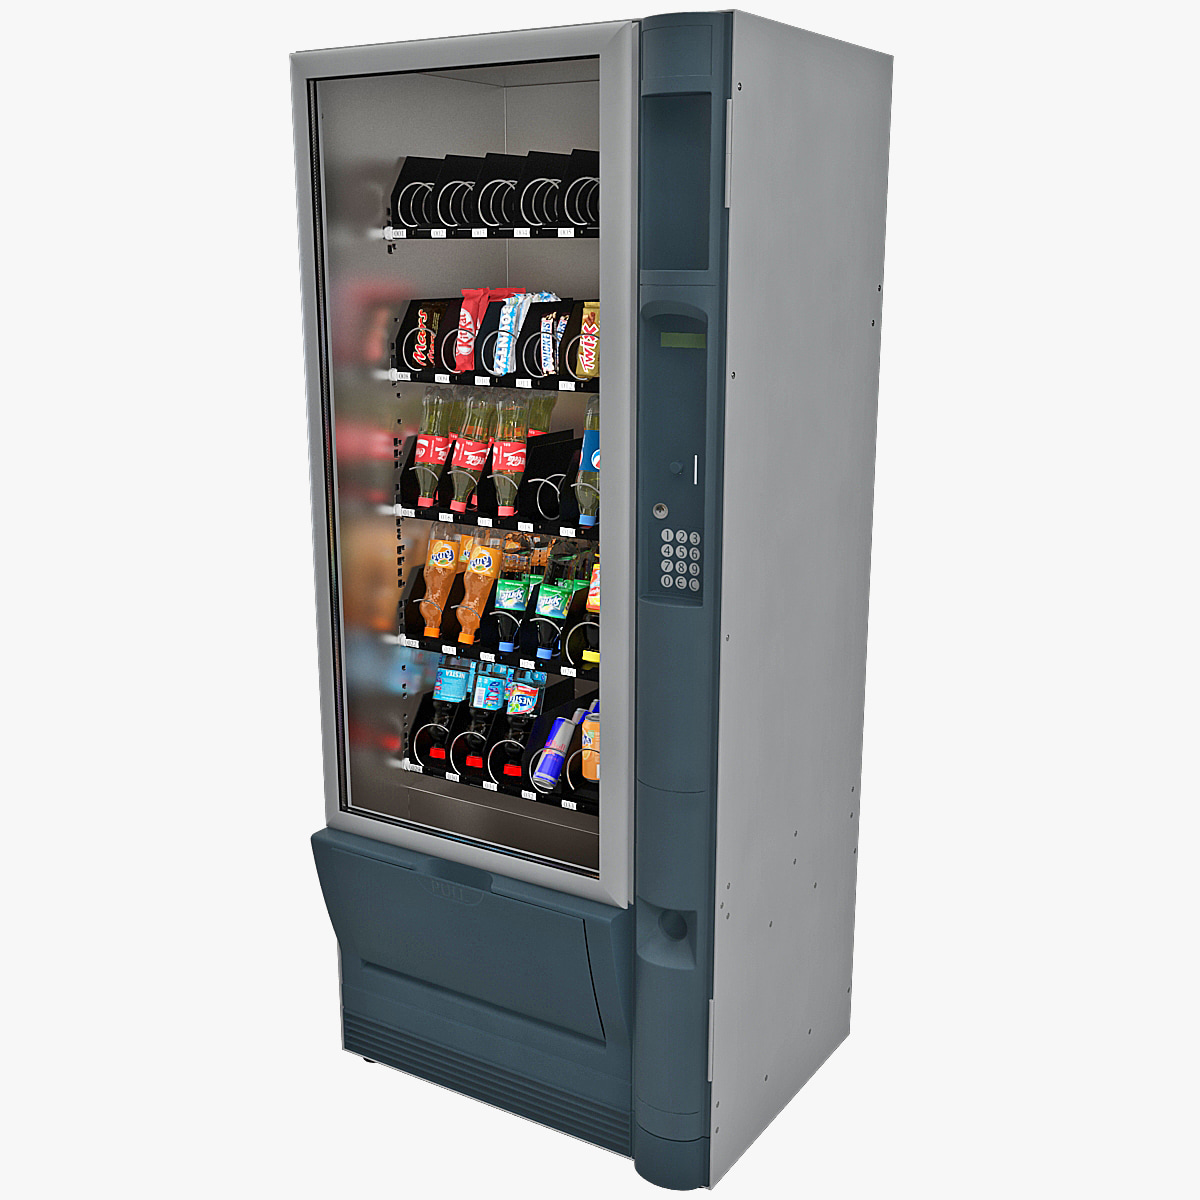 vending machine 2 c4d